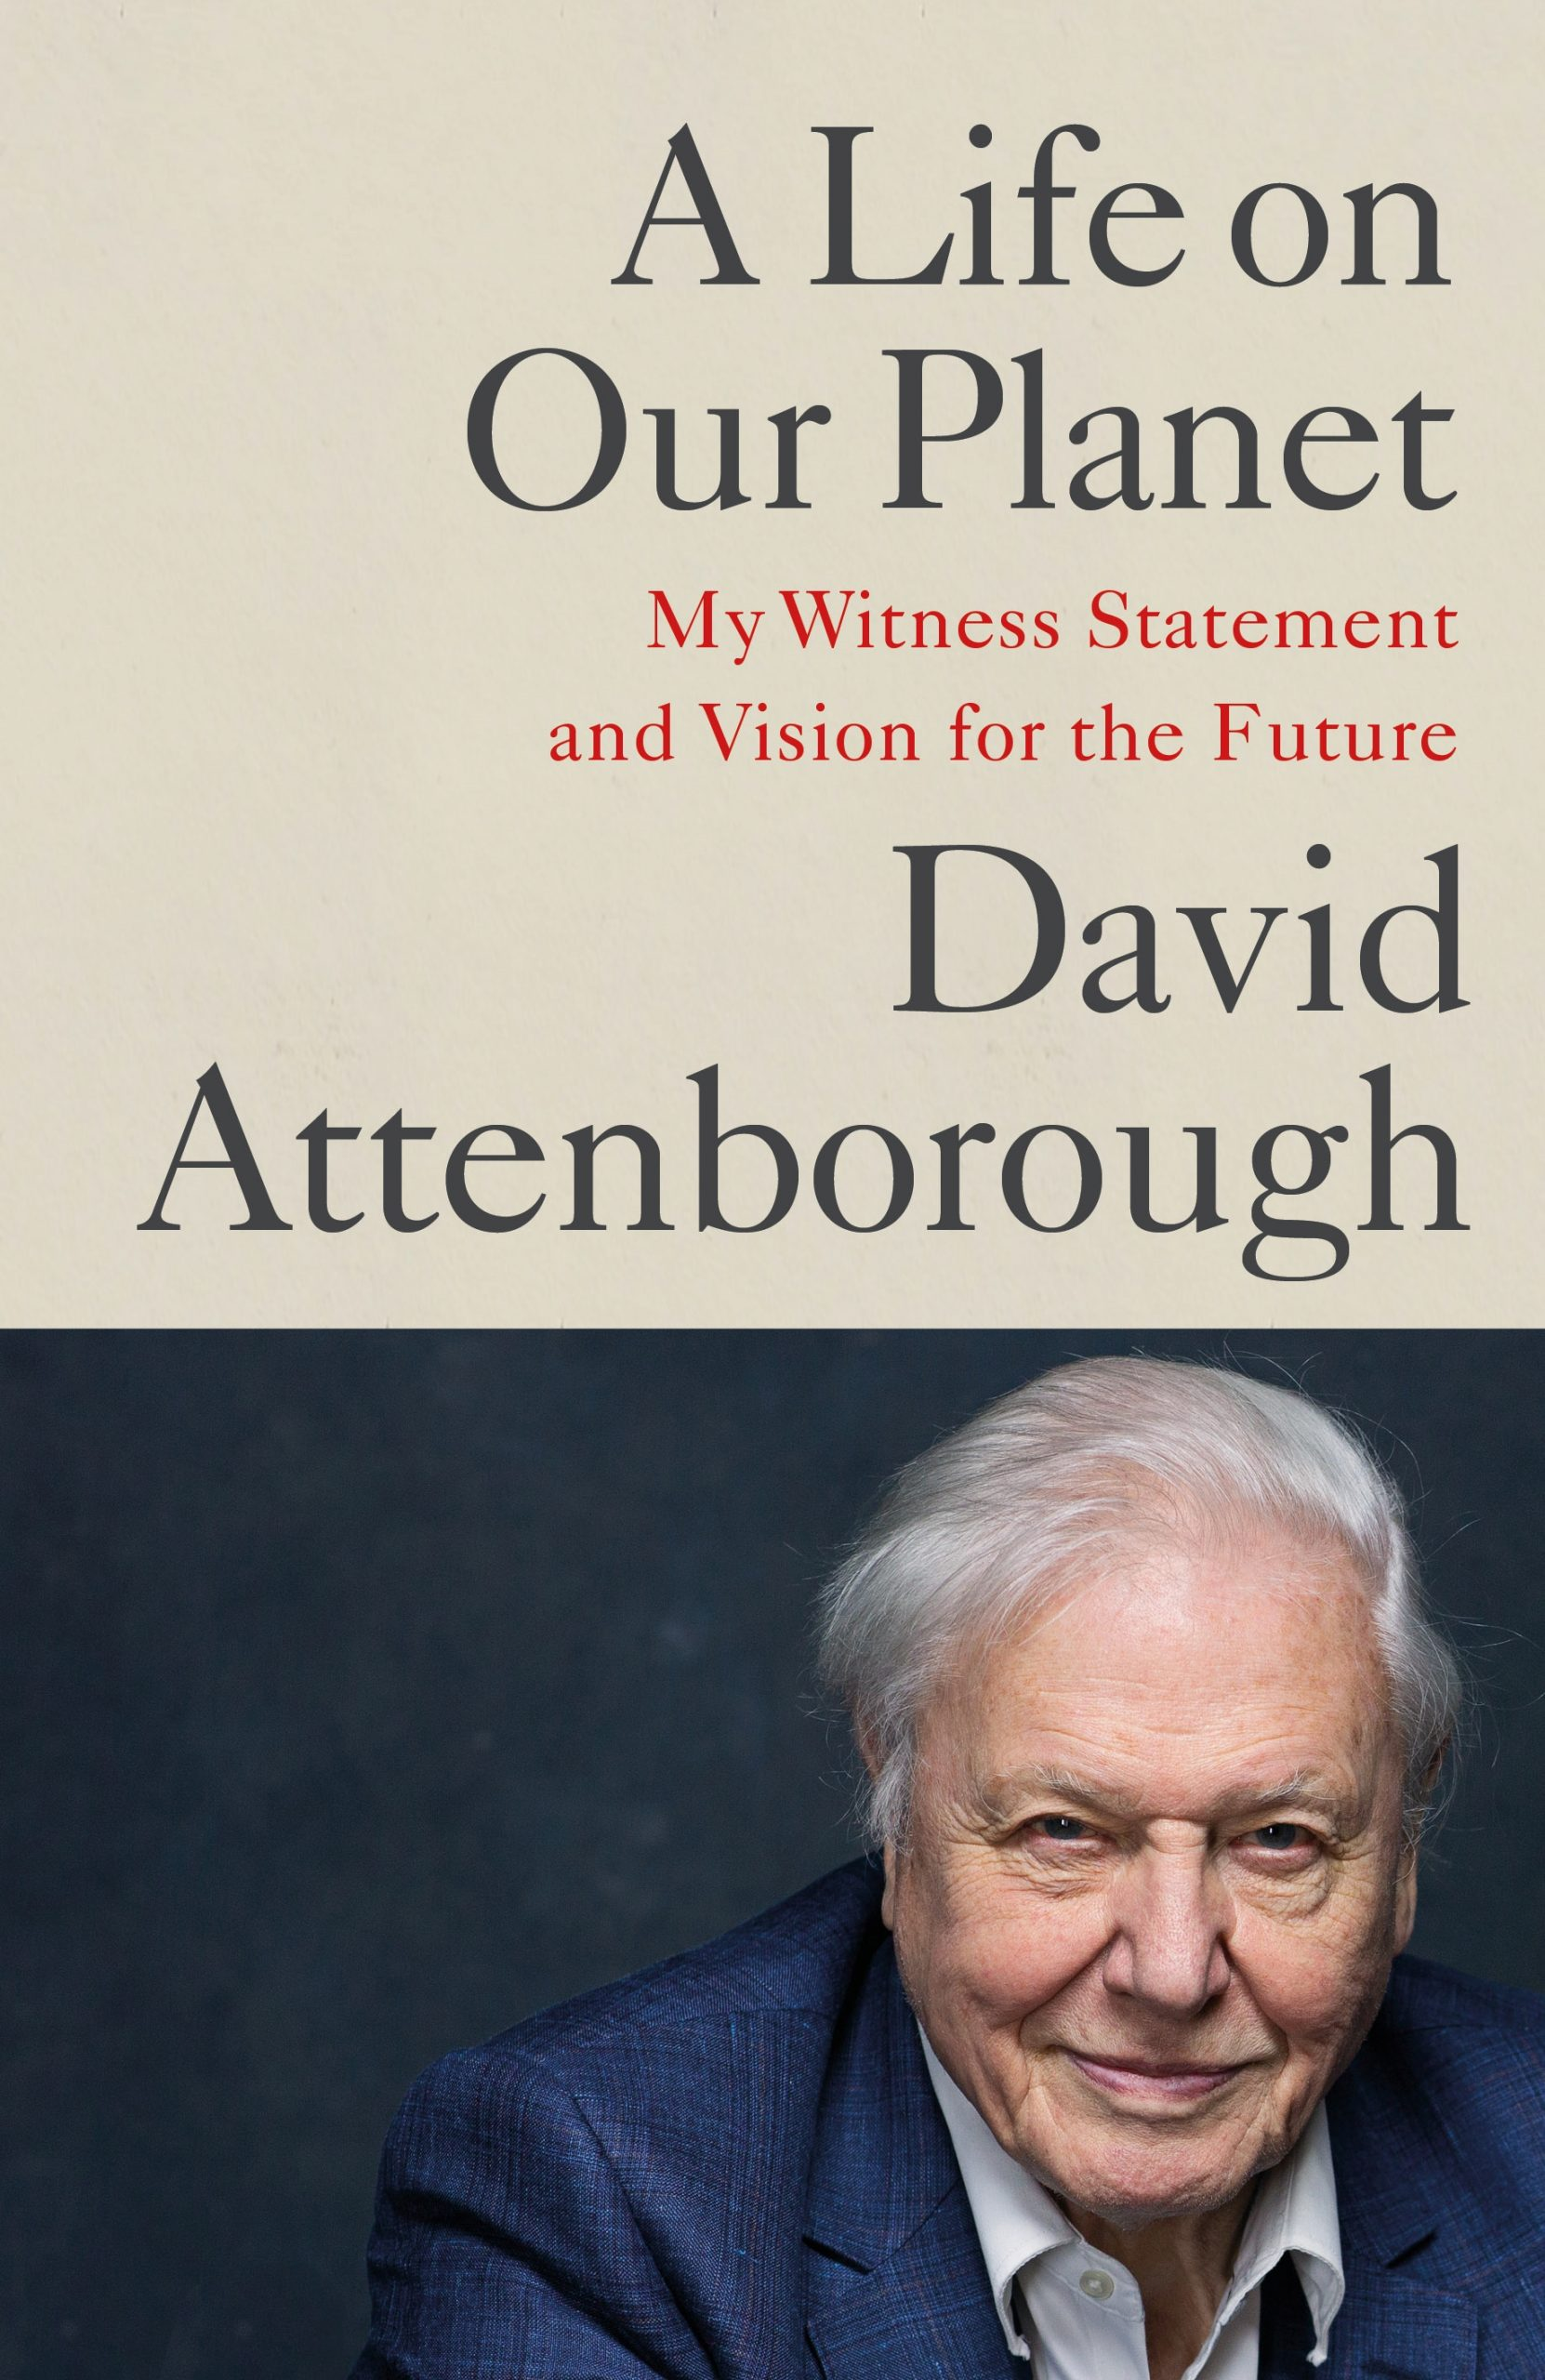 David Attenborough - A Life on Our Planet BookZyfa